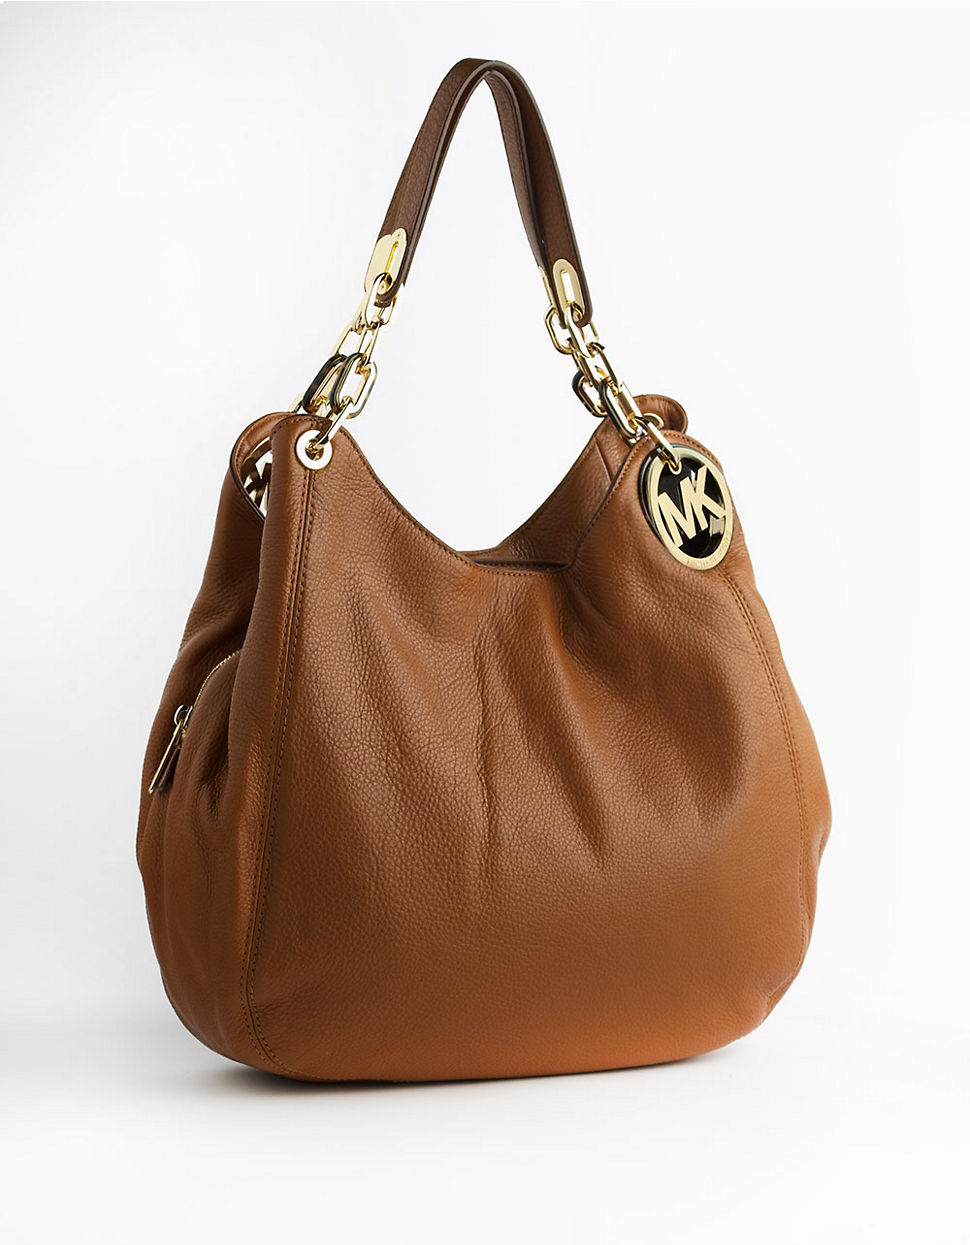 dae8927d68e7 Michael Kors Brown Purse With Gold Chain - Best Purse Image Ccdbb.Org